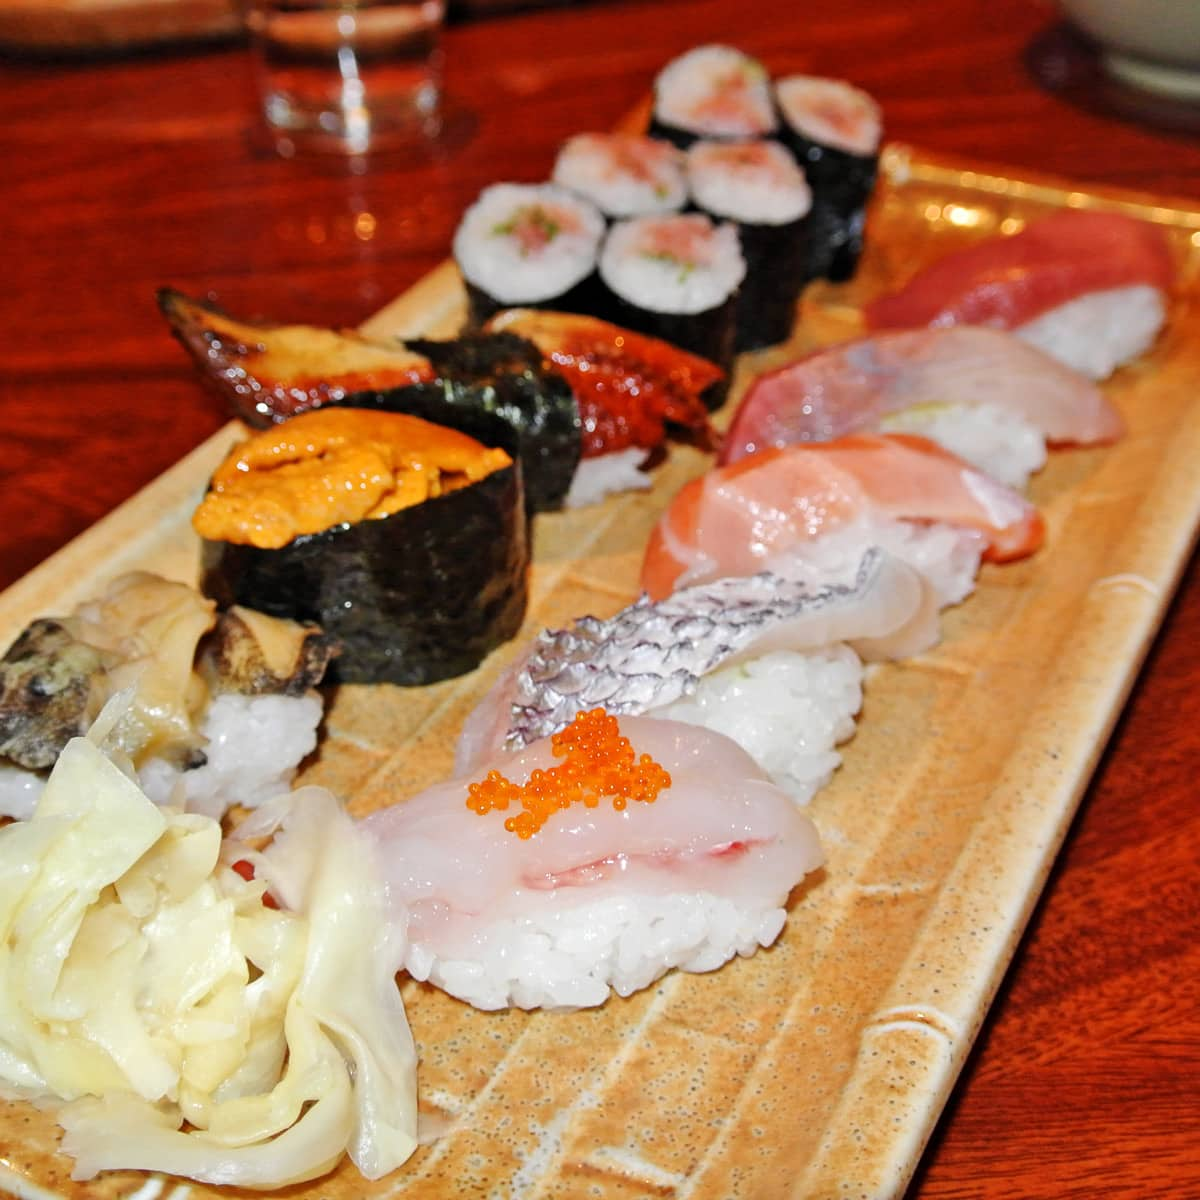 For the Best Sushi in Silicon Valley, get Omakase at Sushi Tomi